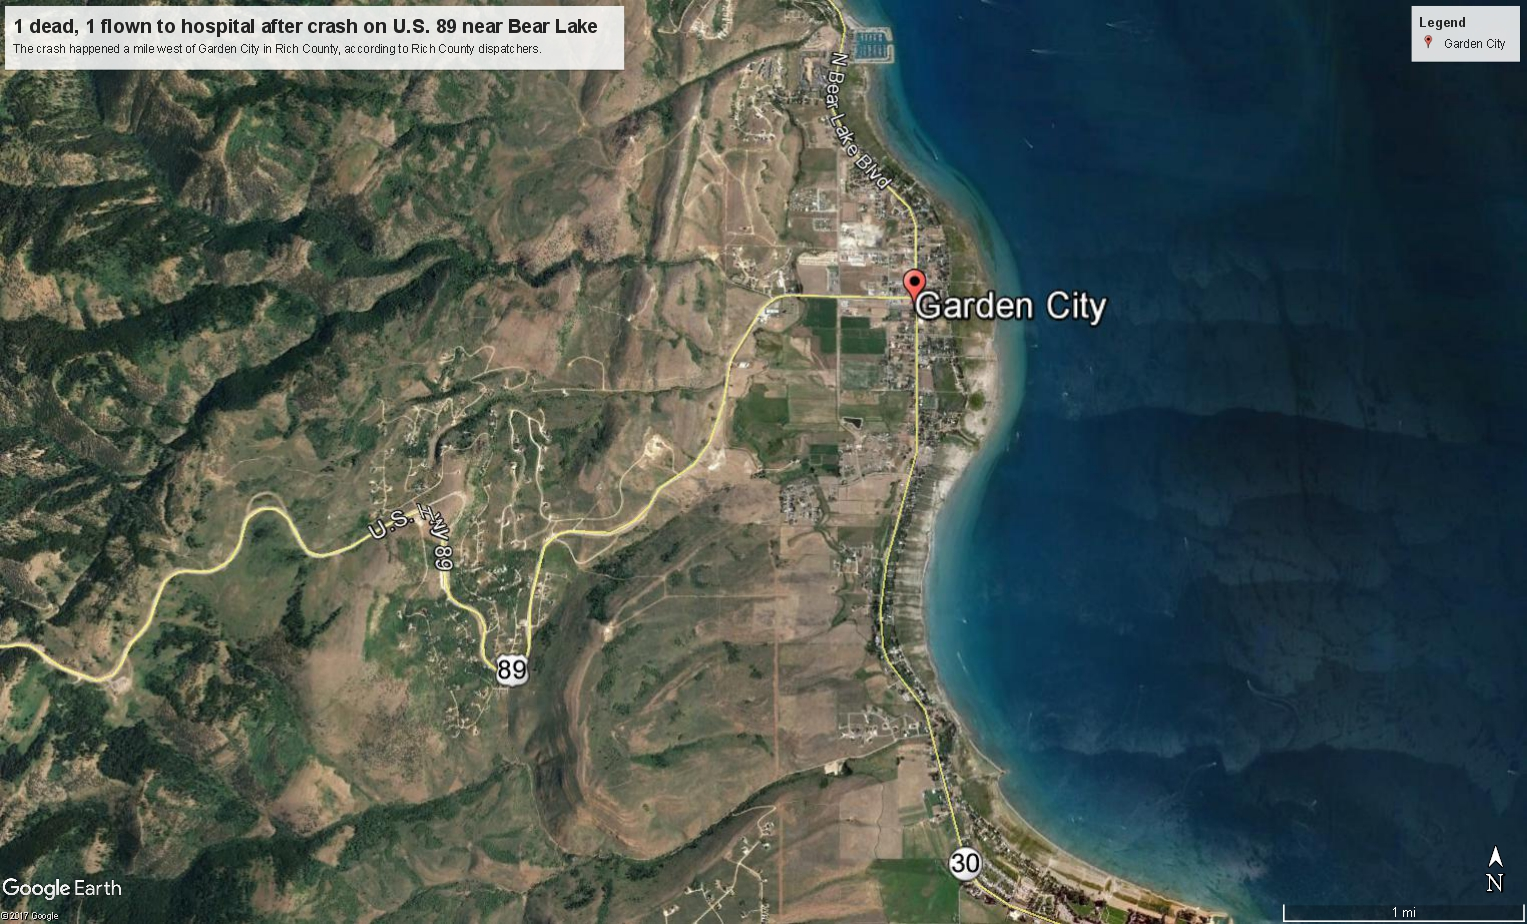 Dead  Flown To Hospital After Crash On US  Near Bear Lake - Us counties google earth